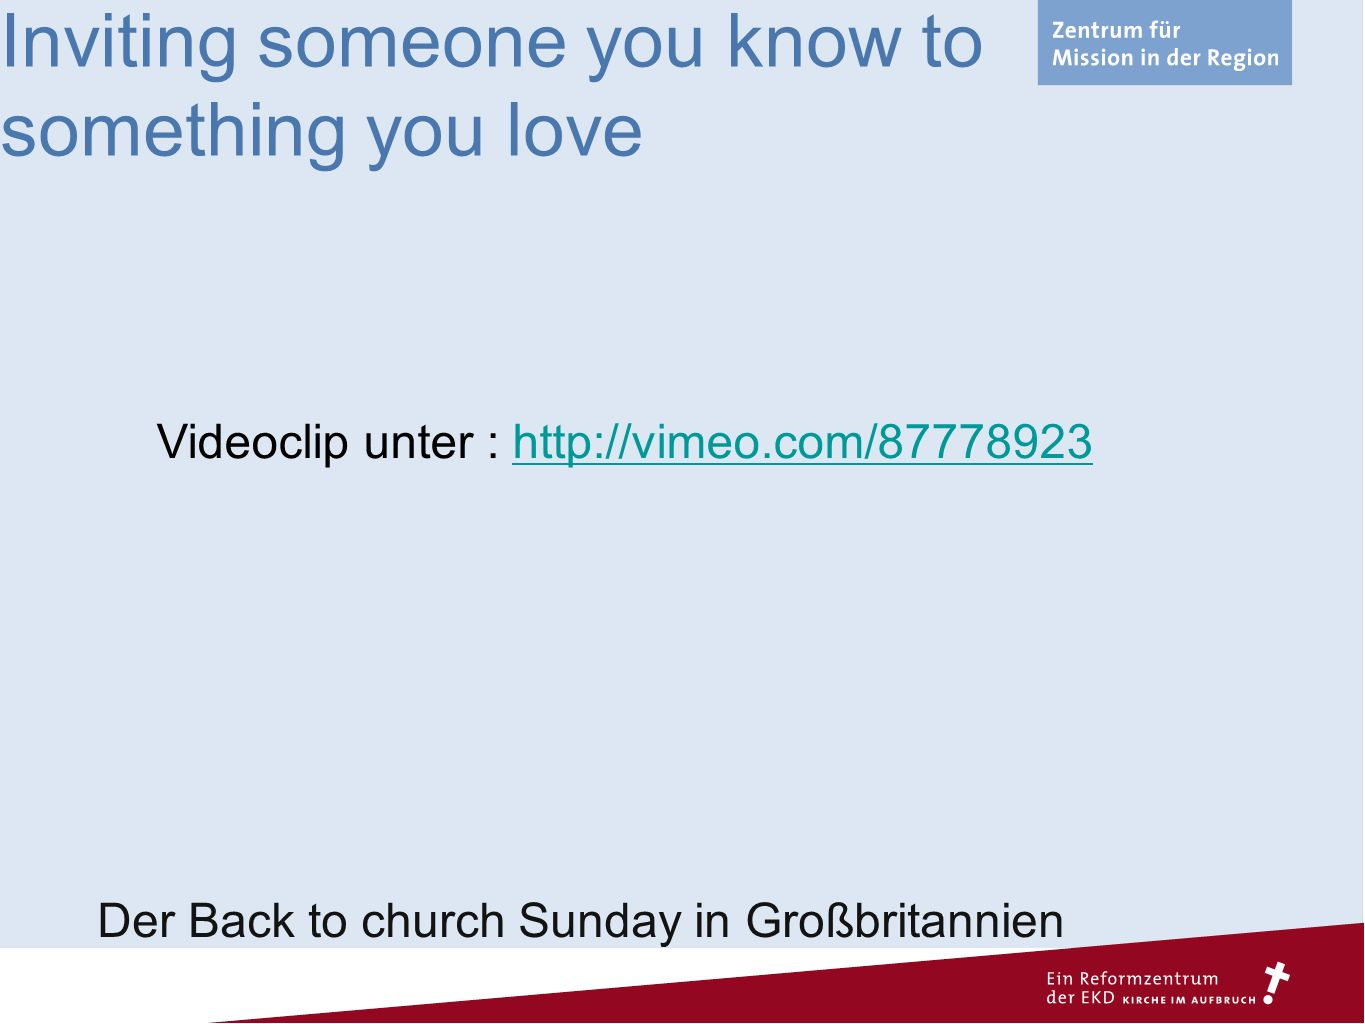 Inviting someone you know to something you love Der Back to church Sunday in Großbritannien Videoclip unter : http://vimeo.com/87778923http://vimeo.com/87778923